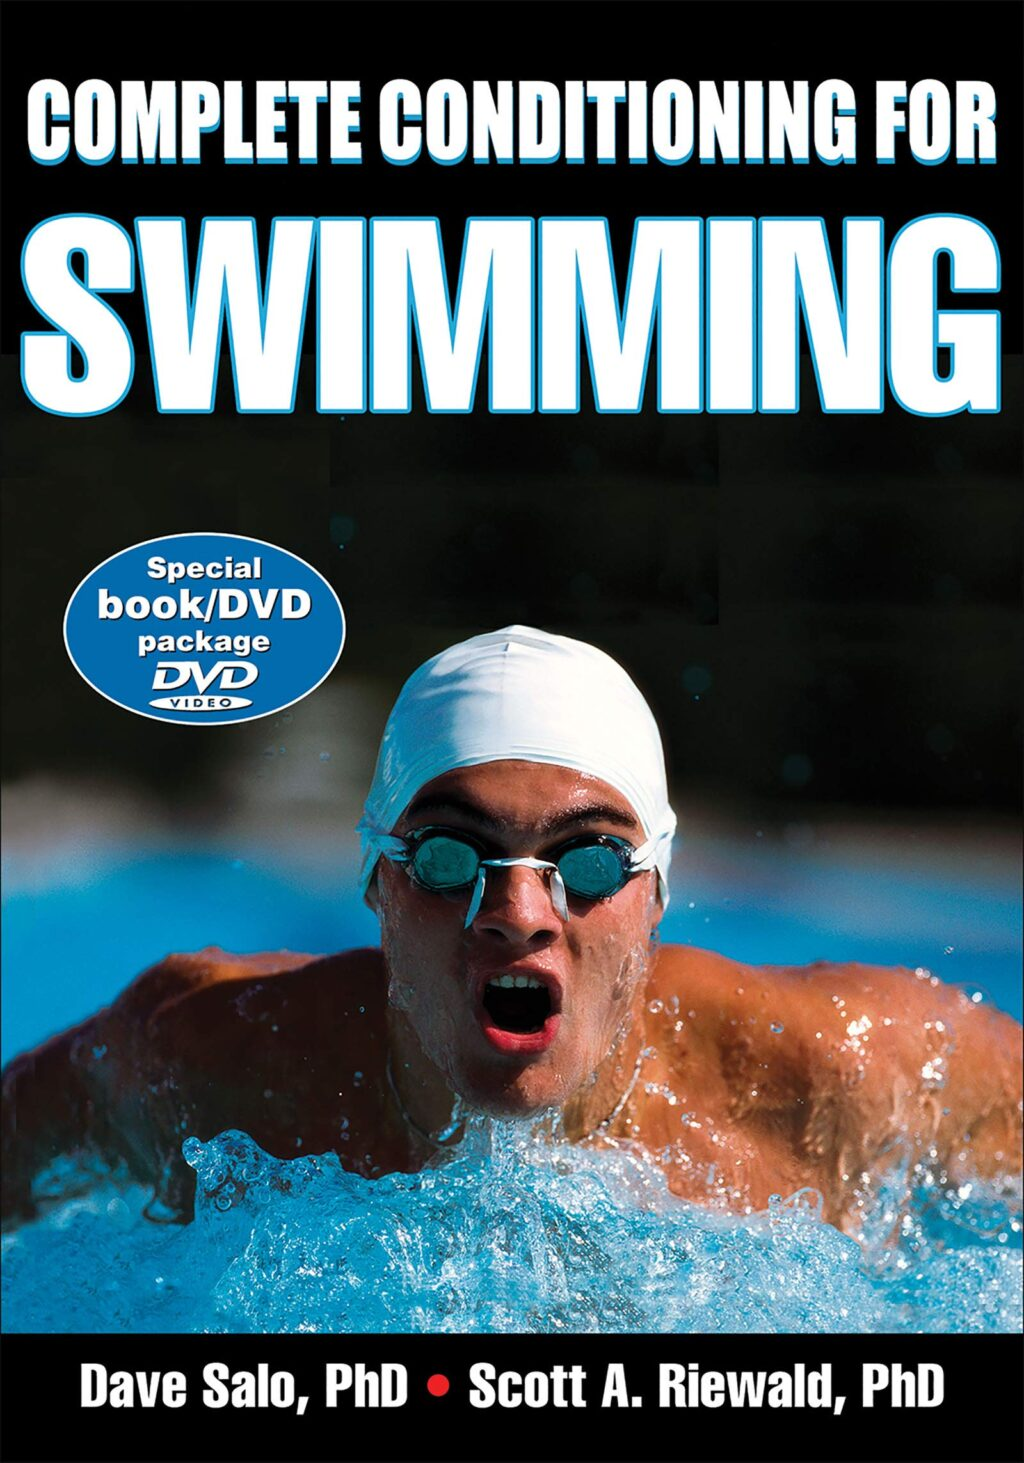 complete-conditioning-for-swimming-special-bookd-dvd